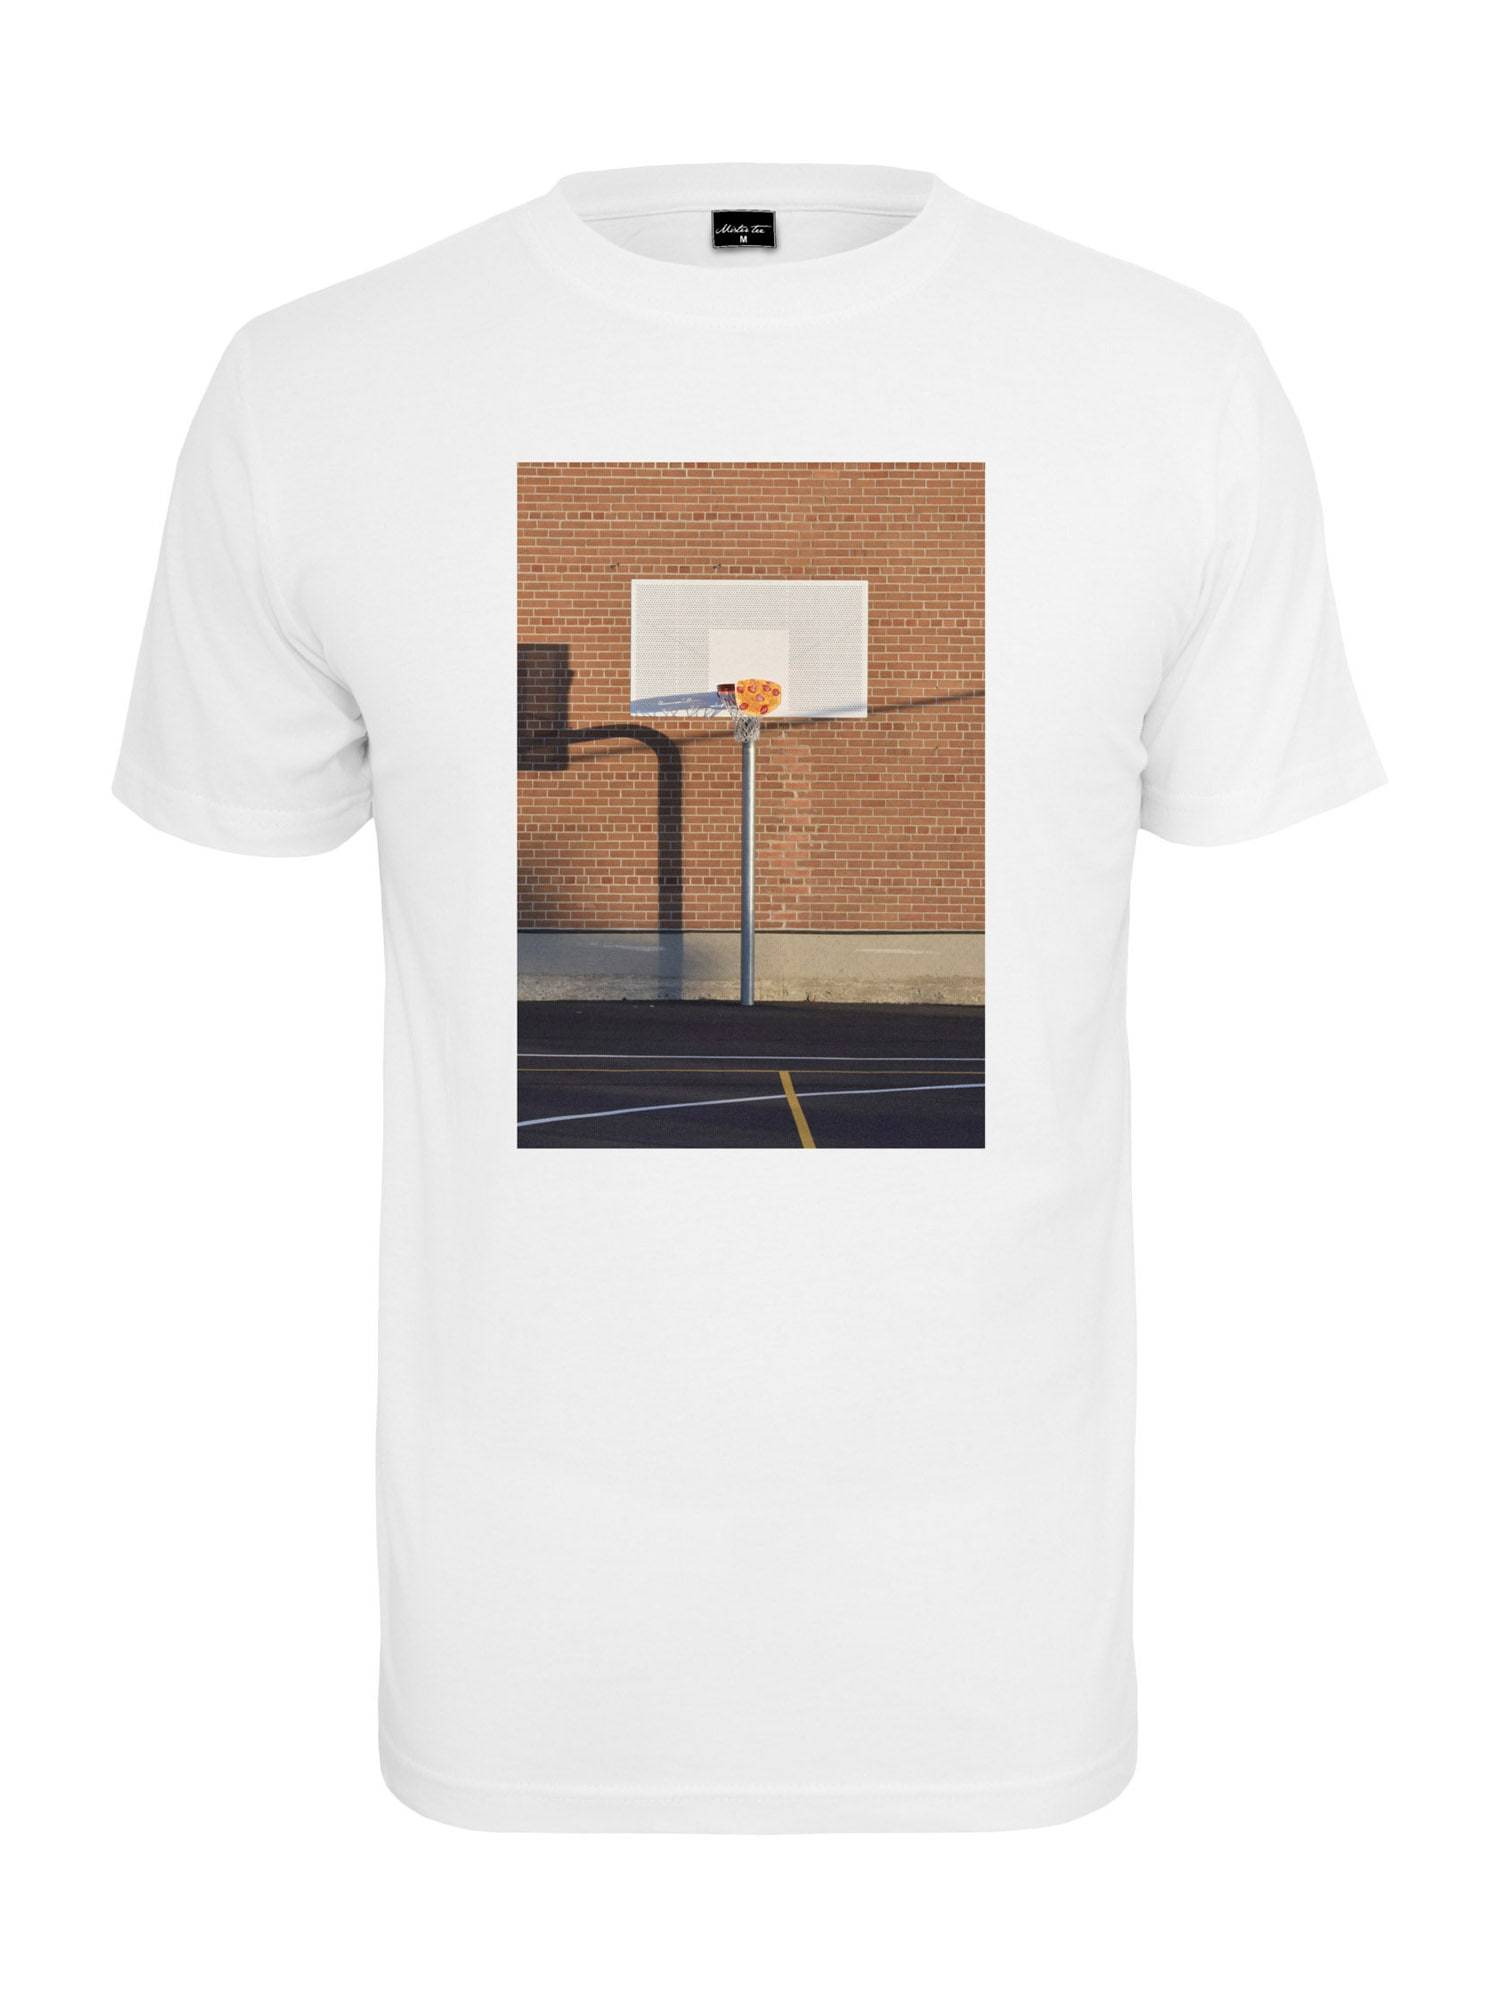 Tee T-Shirt 'Pizza Basketball Court'  - Blanc - Taille: XXL - male